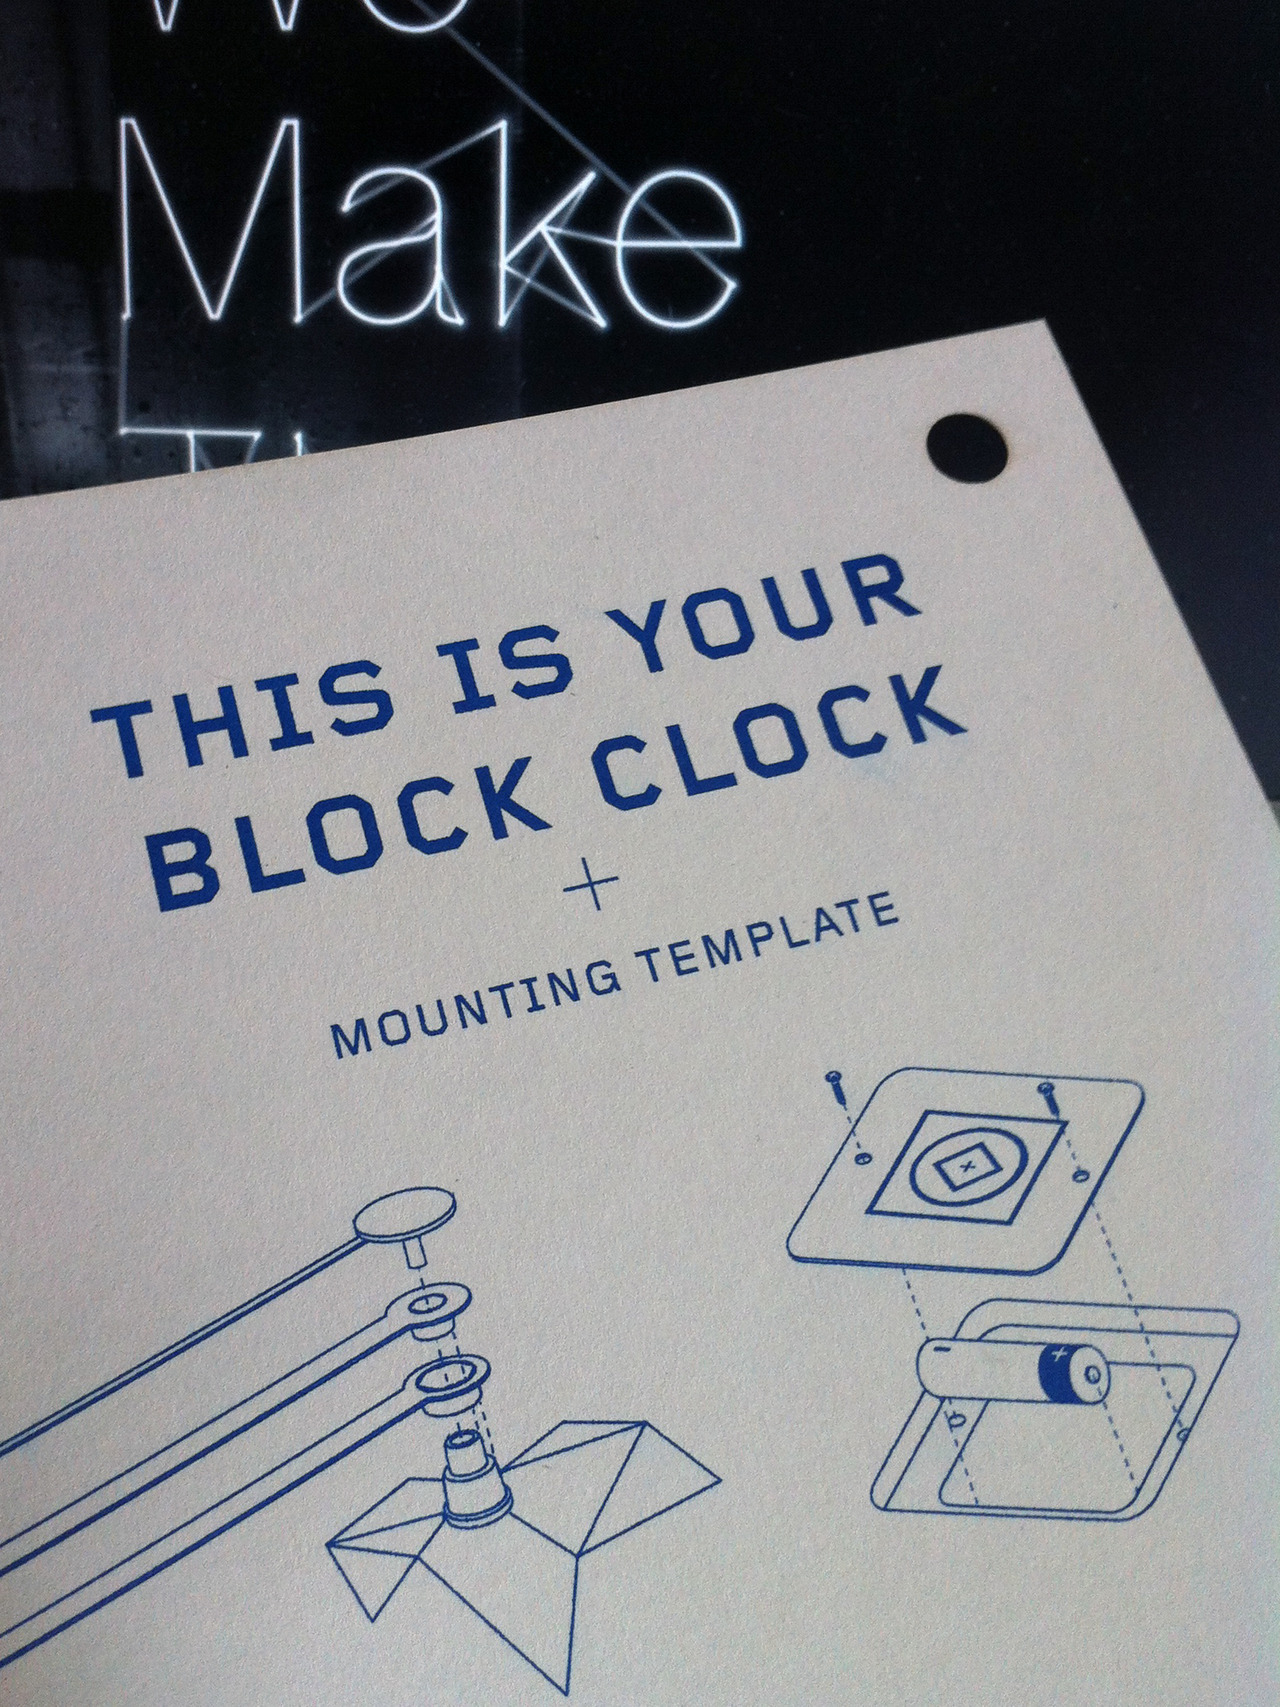 Our freshly updated mounting template and instructions for our Block Clocks. Printed on Steam Whistle Press's new Risograph and laser cut in house by us - via followsuchandsuch